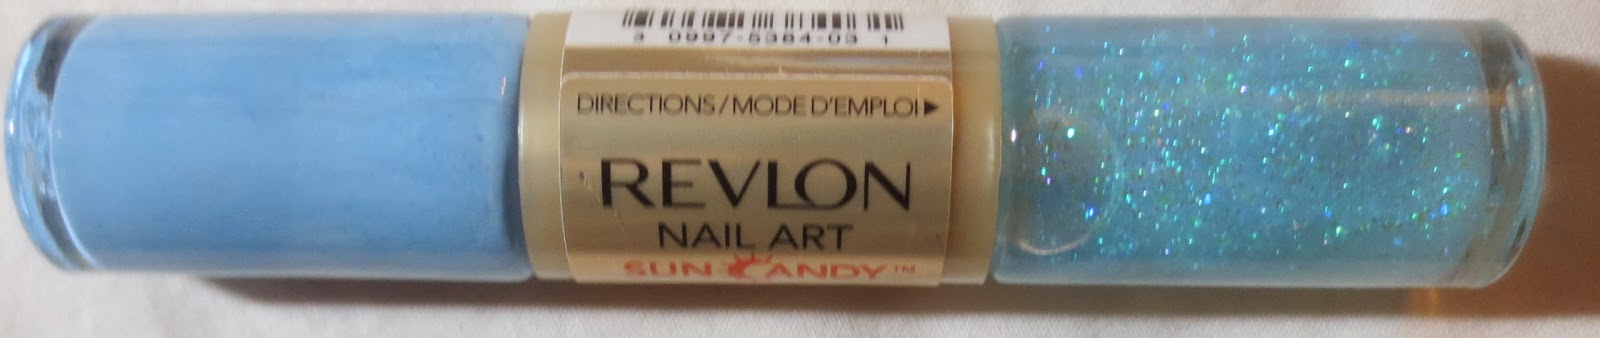 Revlon Nail Art Sun Candy in Northern Lights